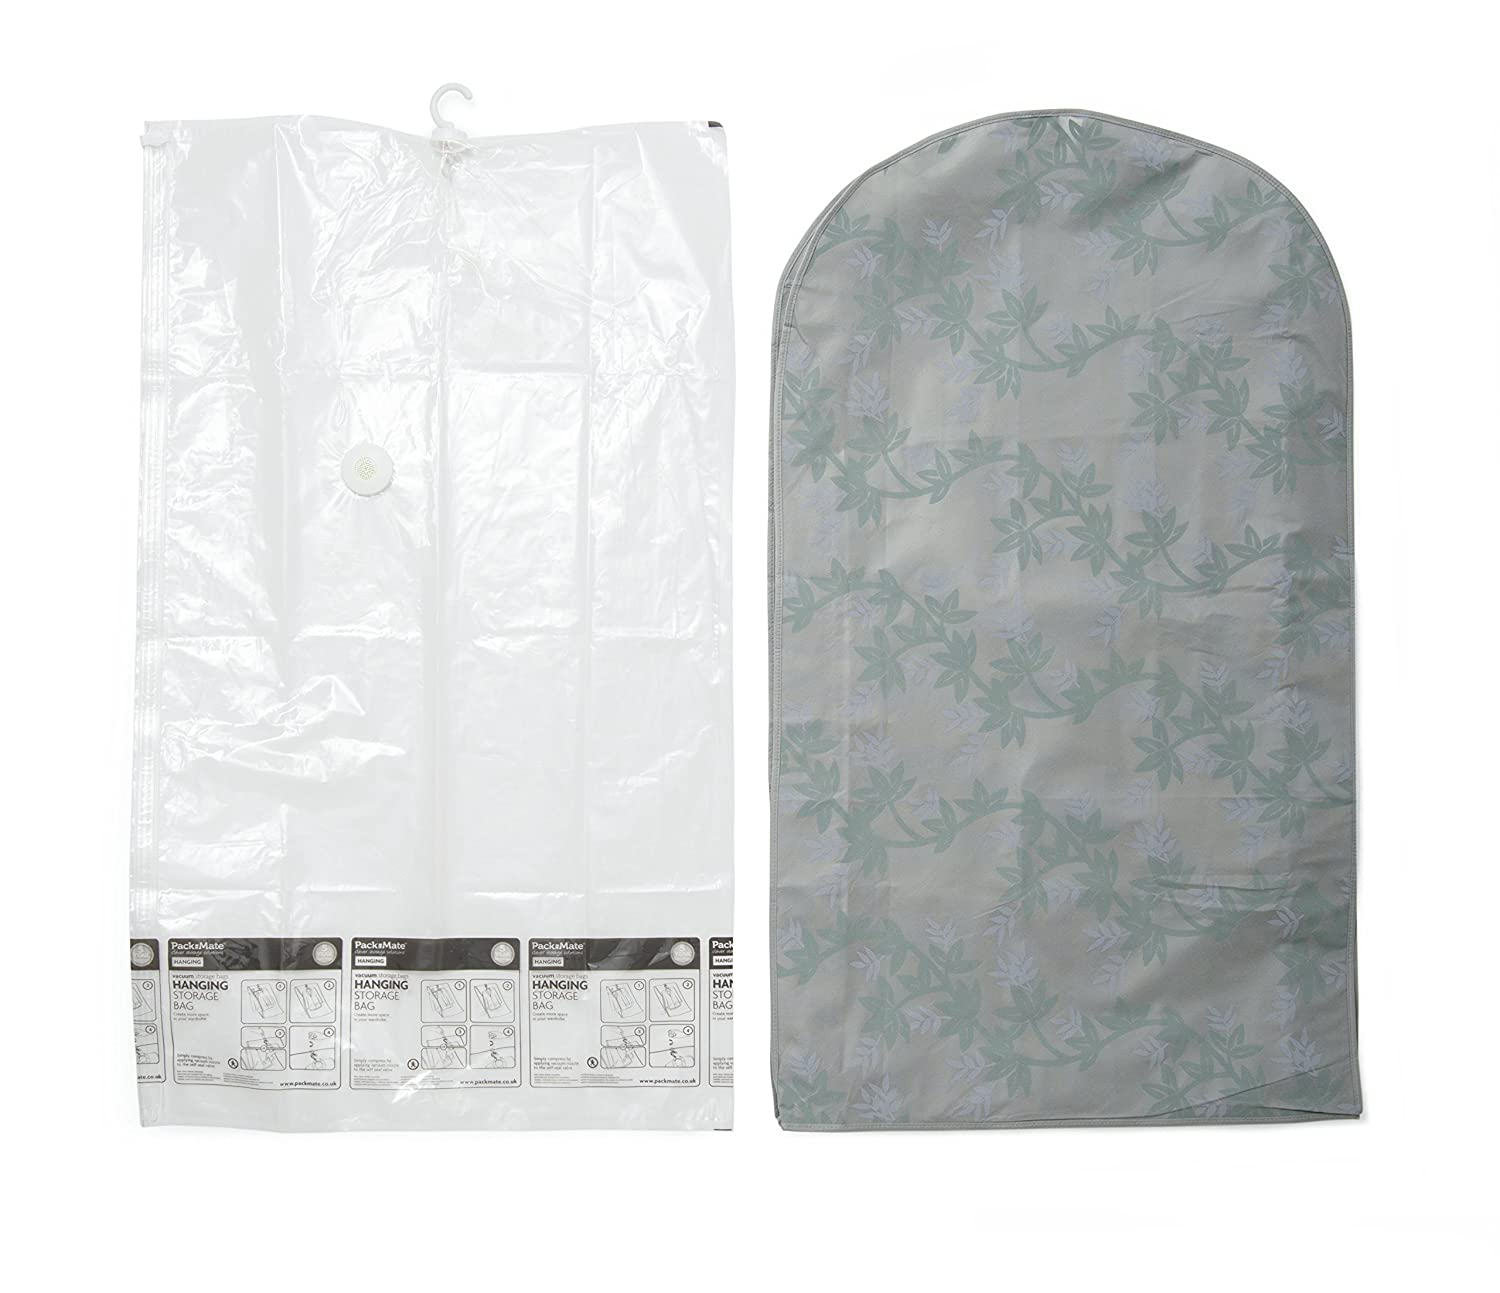 b85063d74c Packmate ® Extra Large Hanging Vacuum Storage Bags A Huge Space Saver  Suitable For Suits